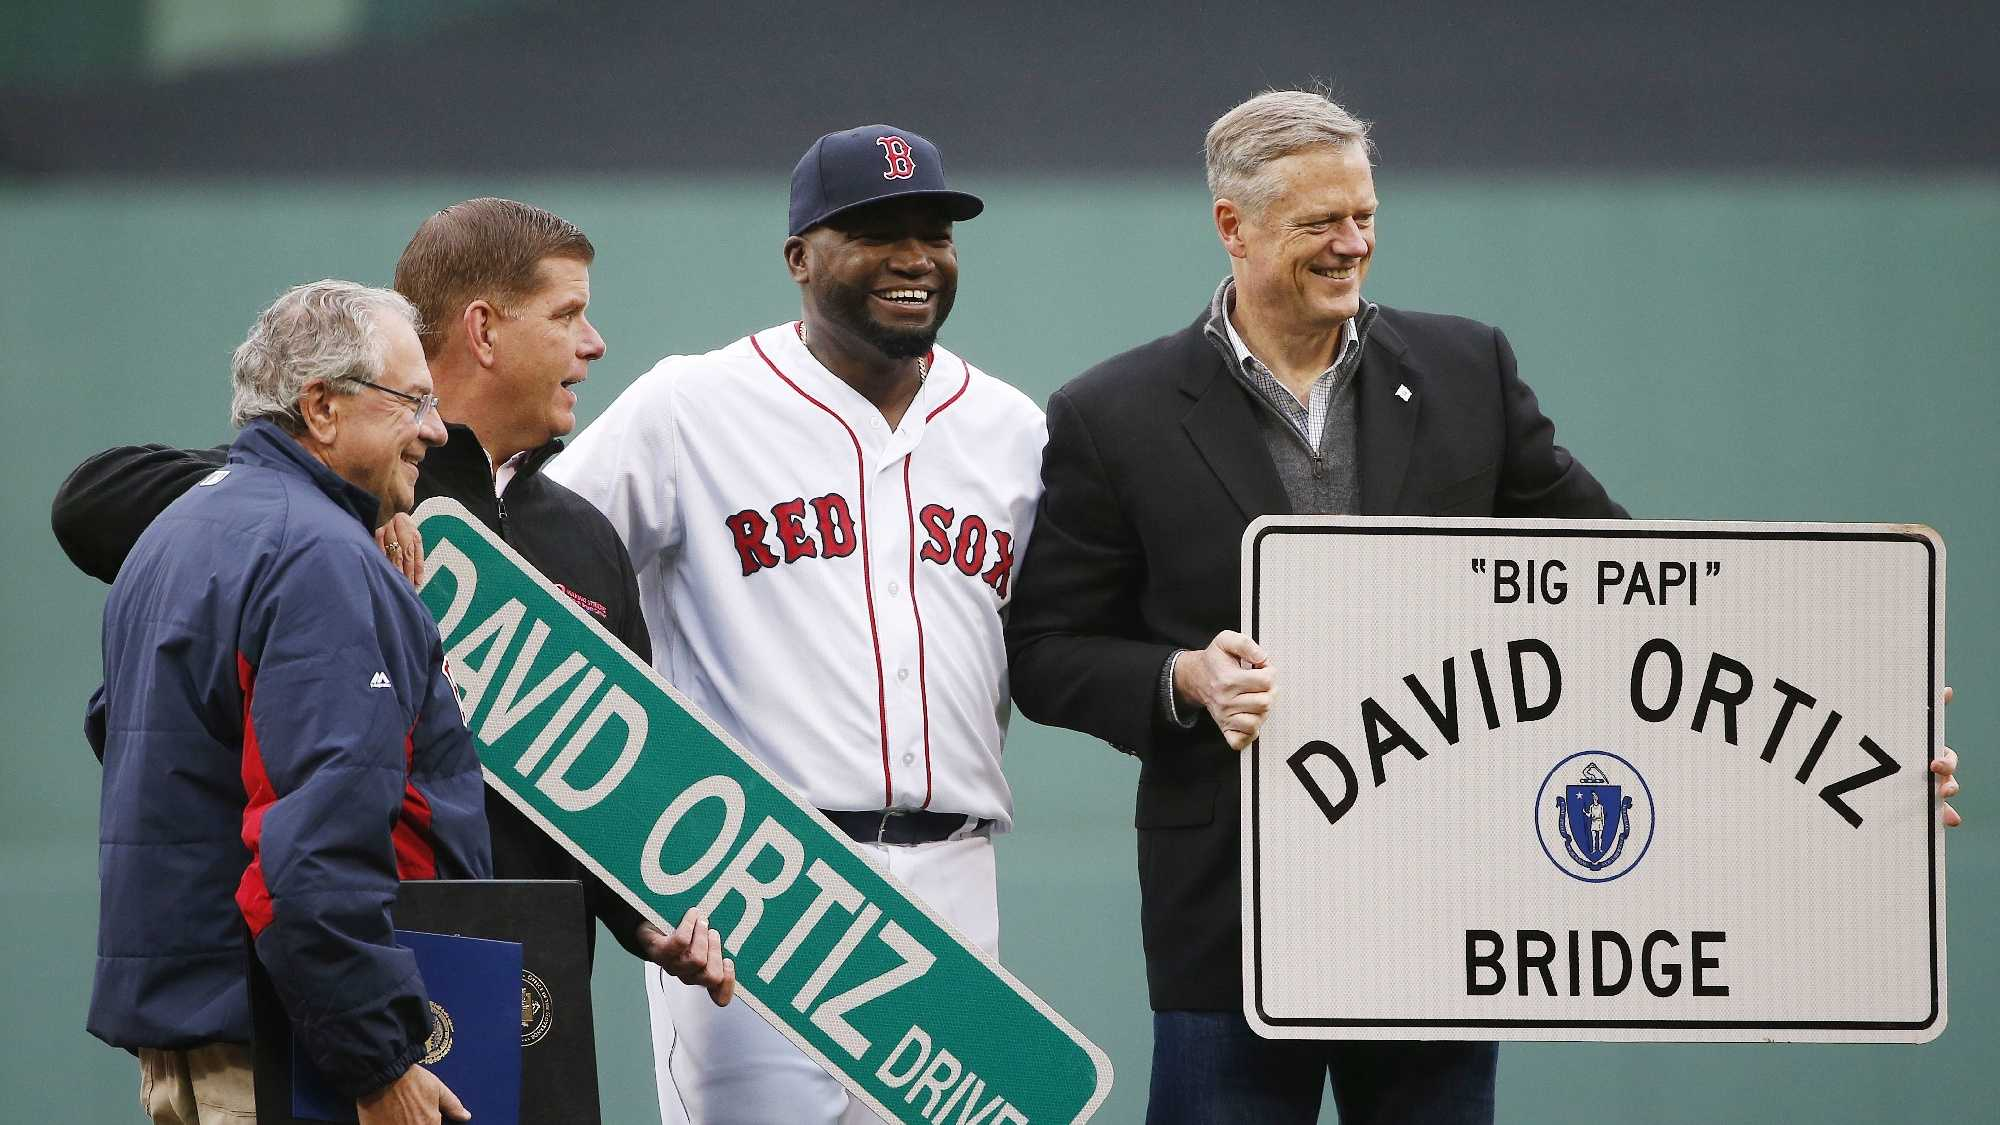 Boston Red Sox's David Ortiz, center, stands with Massachusetts Gov. Charlie Baker, right, Boston Mayor Marty Walsh, second from left, and Massachusetts Speaker of House Robert DeLeo during a ceremony to honor Ortiz before a baseball game against the Toronto Blue Jays in Boston, Sunday, Oct. 2, 2016.